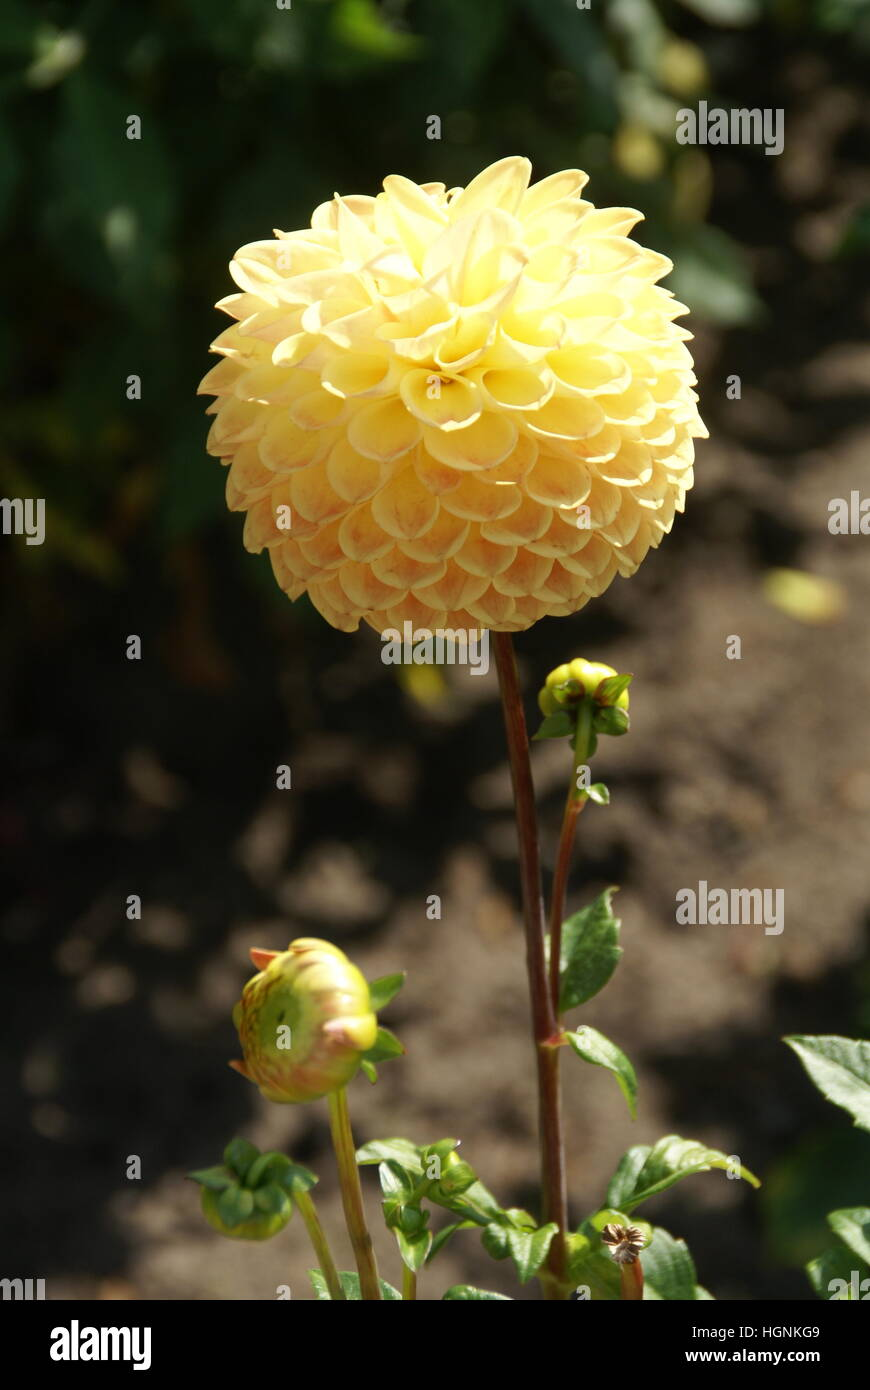 A chrysanthemum or yellow flower blooming. - Stock Image